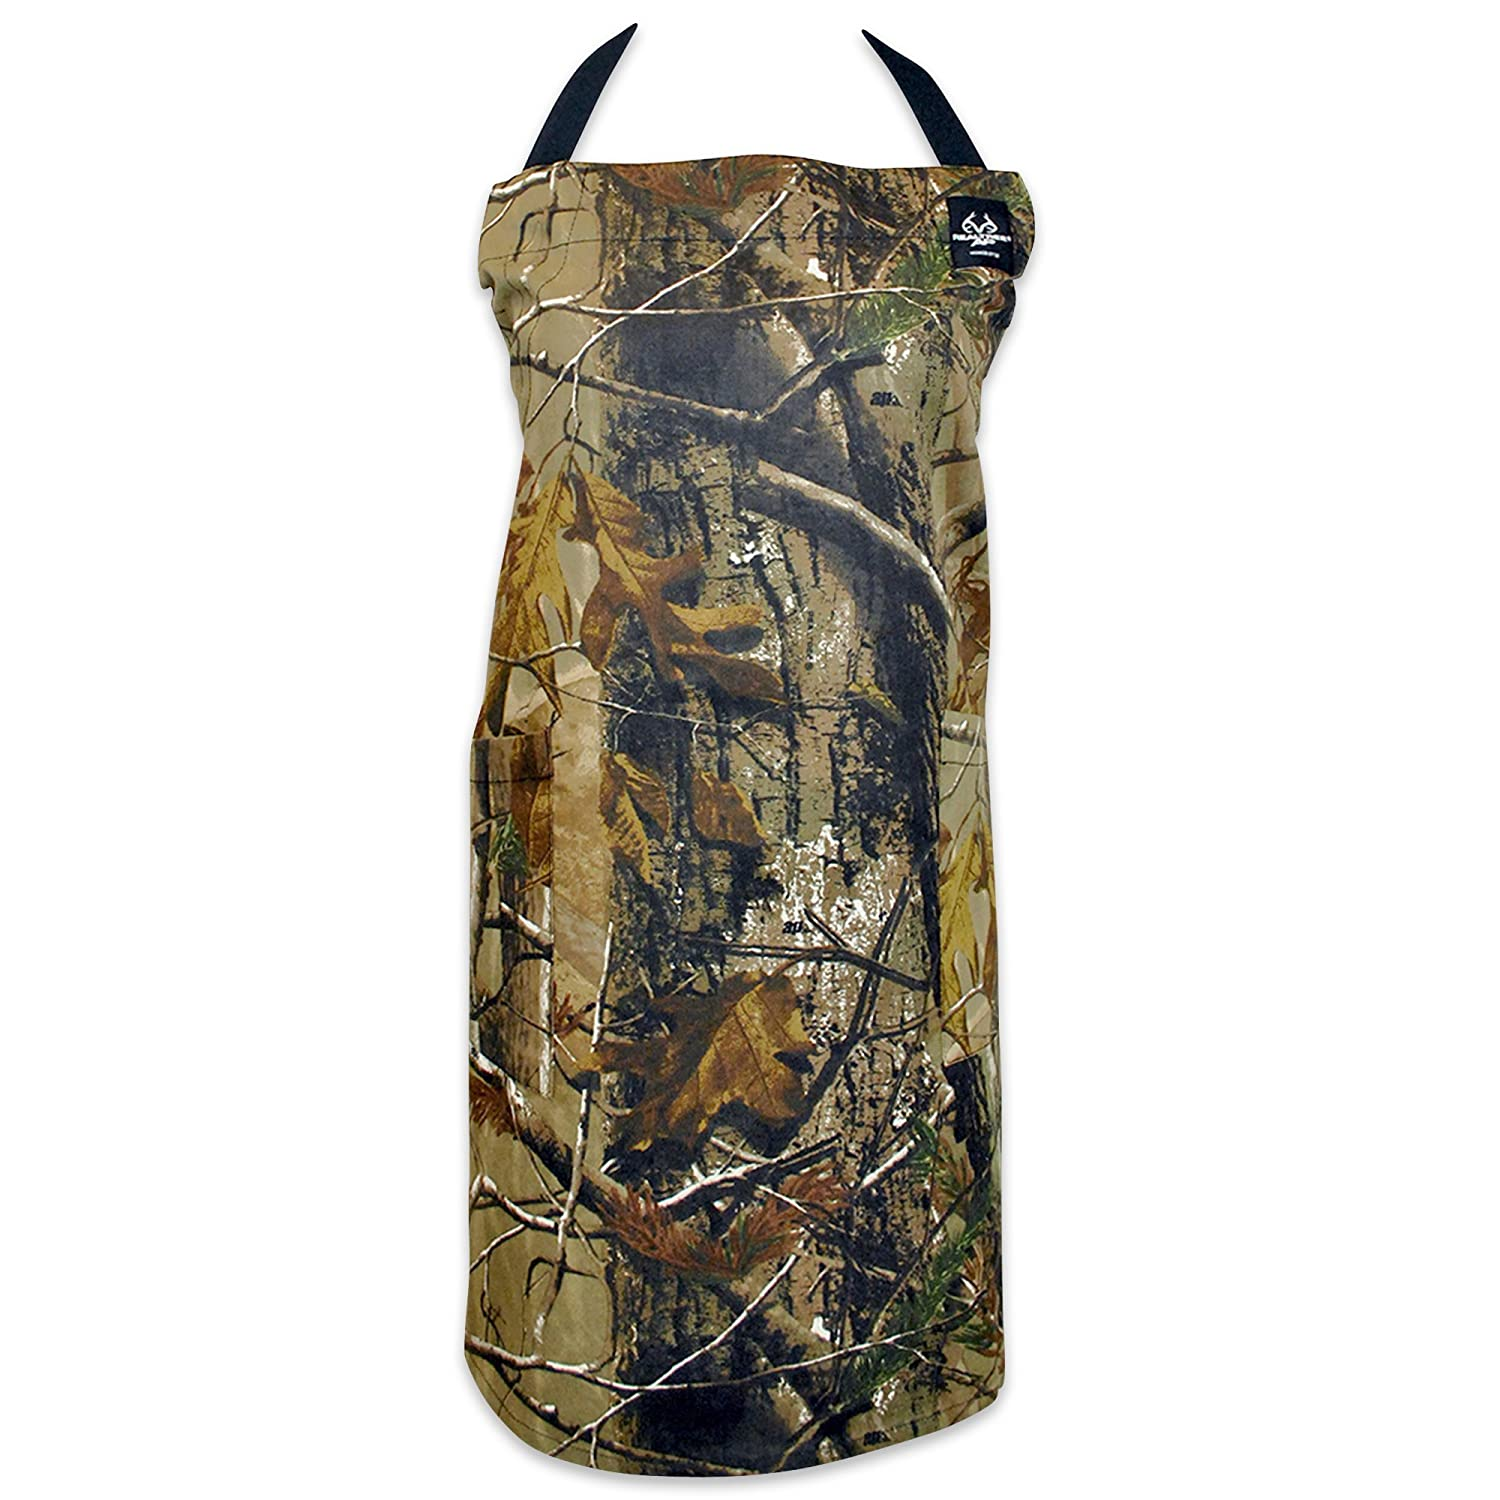 DII 100% Cotton, Machine Washable, RealTree Fashion Chef Apron Perfect For A Camo Kitchen, BBQ, Camping, Flounce Ruffle Apron For Hosting Or Gift - Pink CRT32719